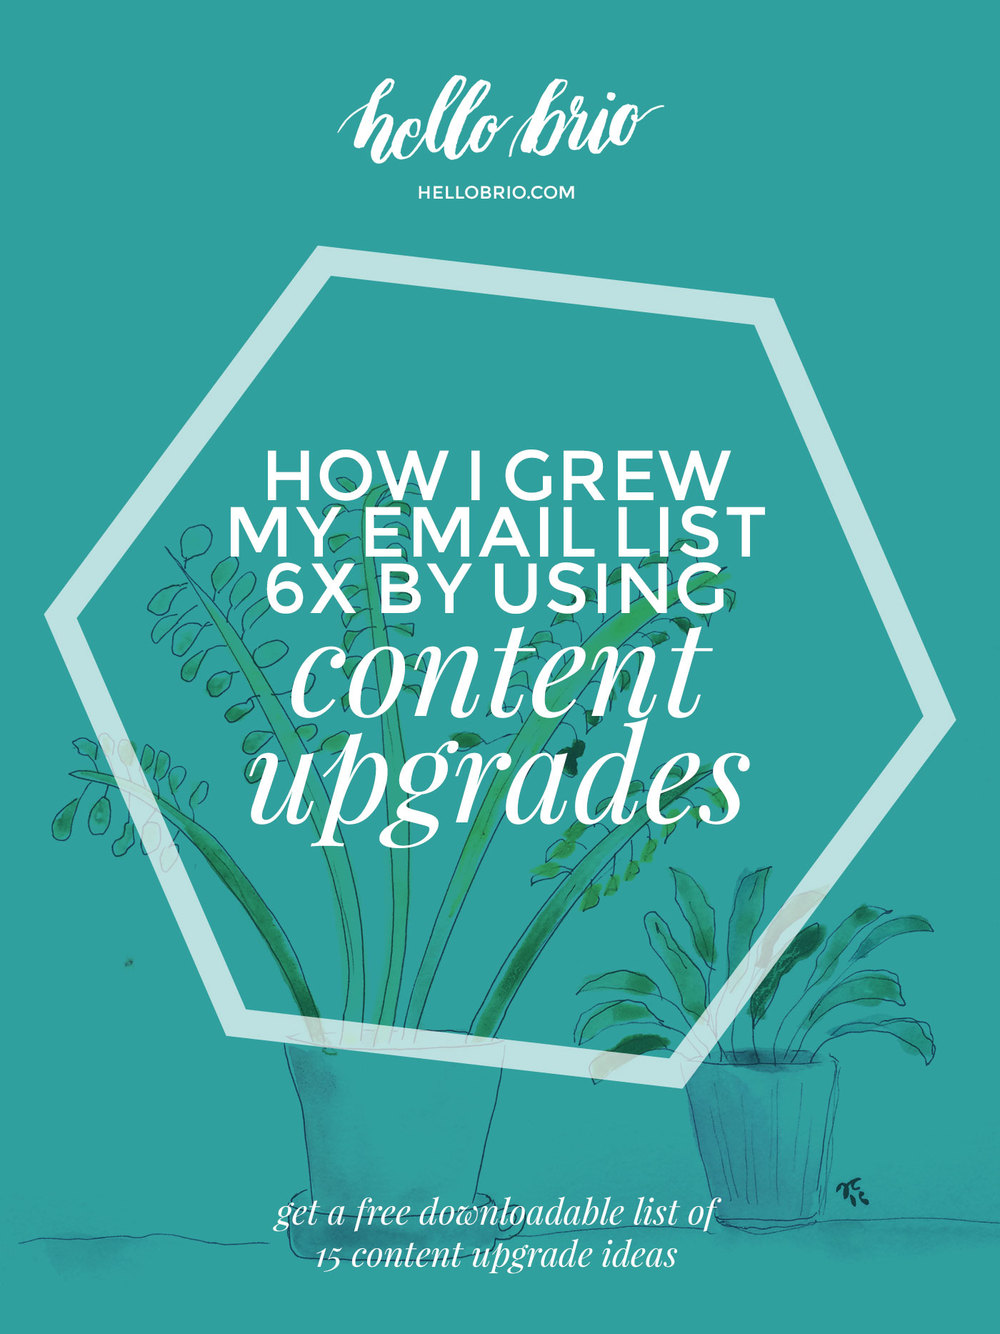 How I grew my email list 6x by using content upgrades, plus a free downloadable list of 15 content upgrade ideas